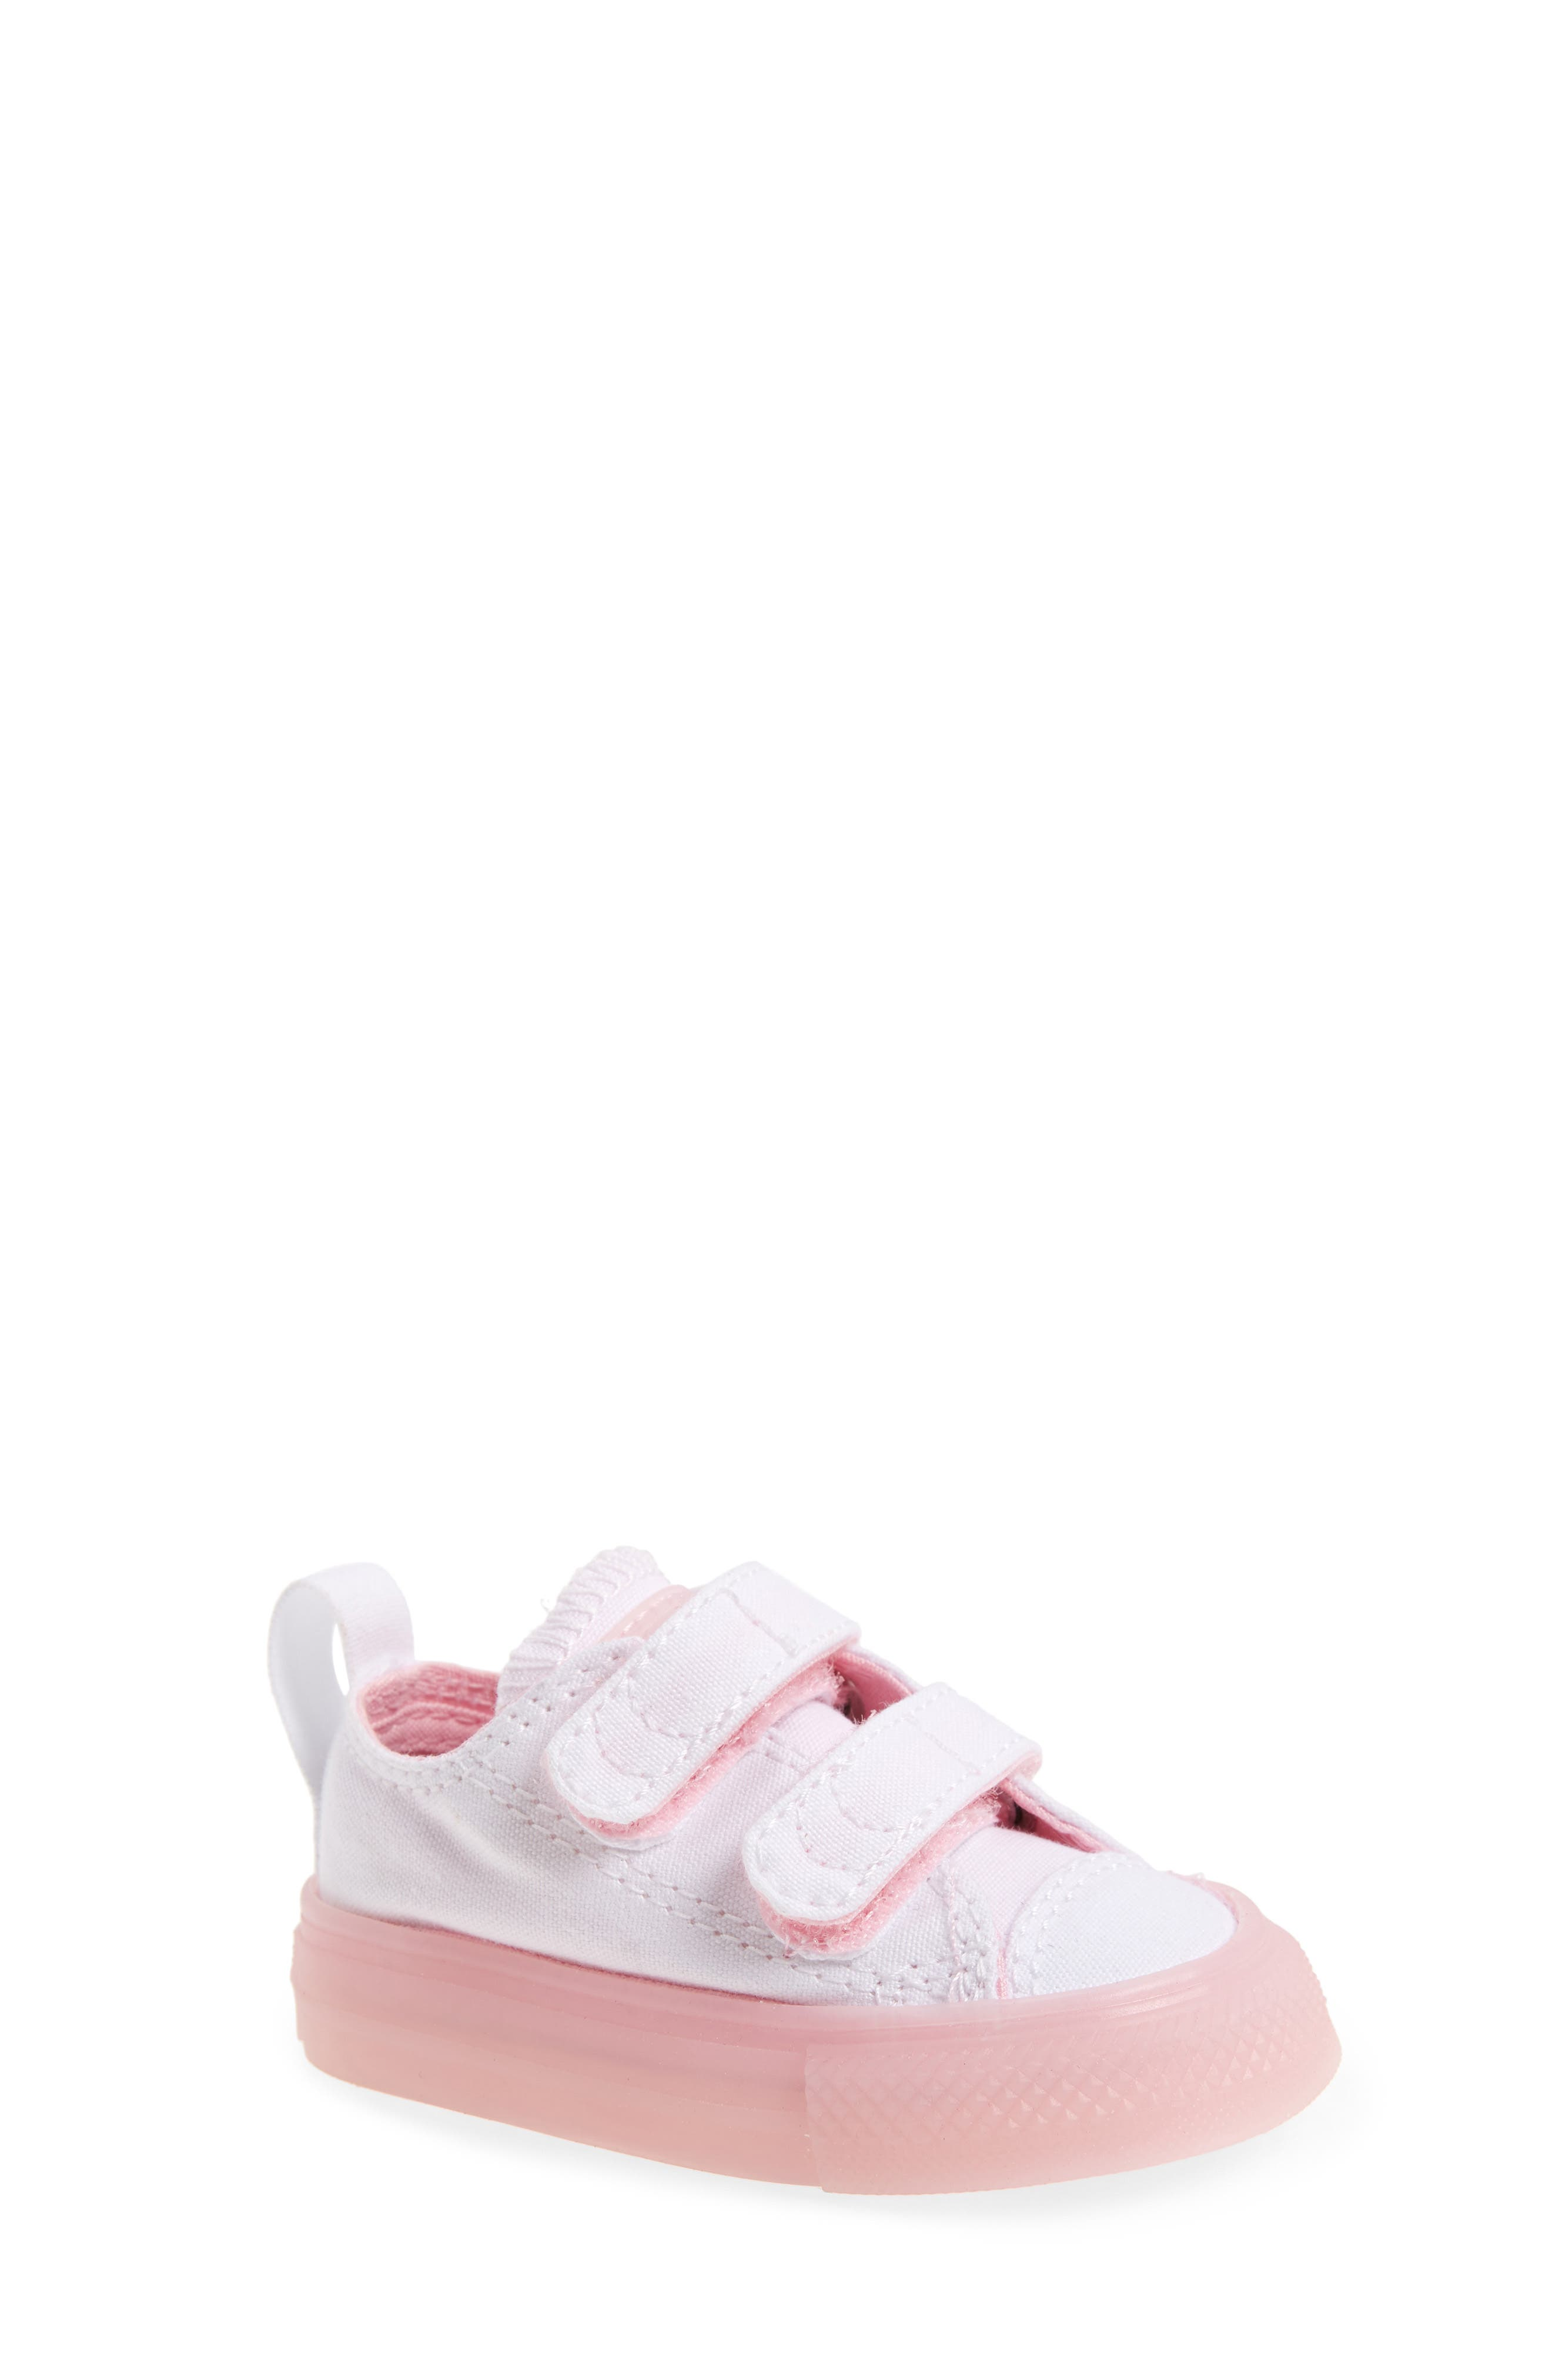 Main Image - Converse Chuck Taylor® All Star® Jelly Sneaker (Baby, Walker & Toddler)